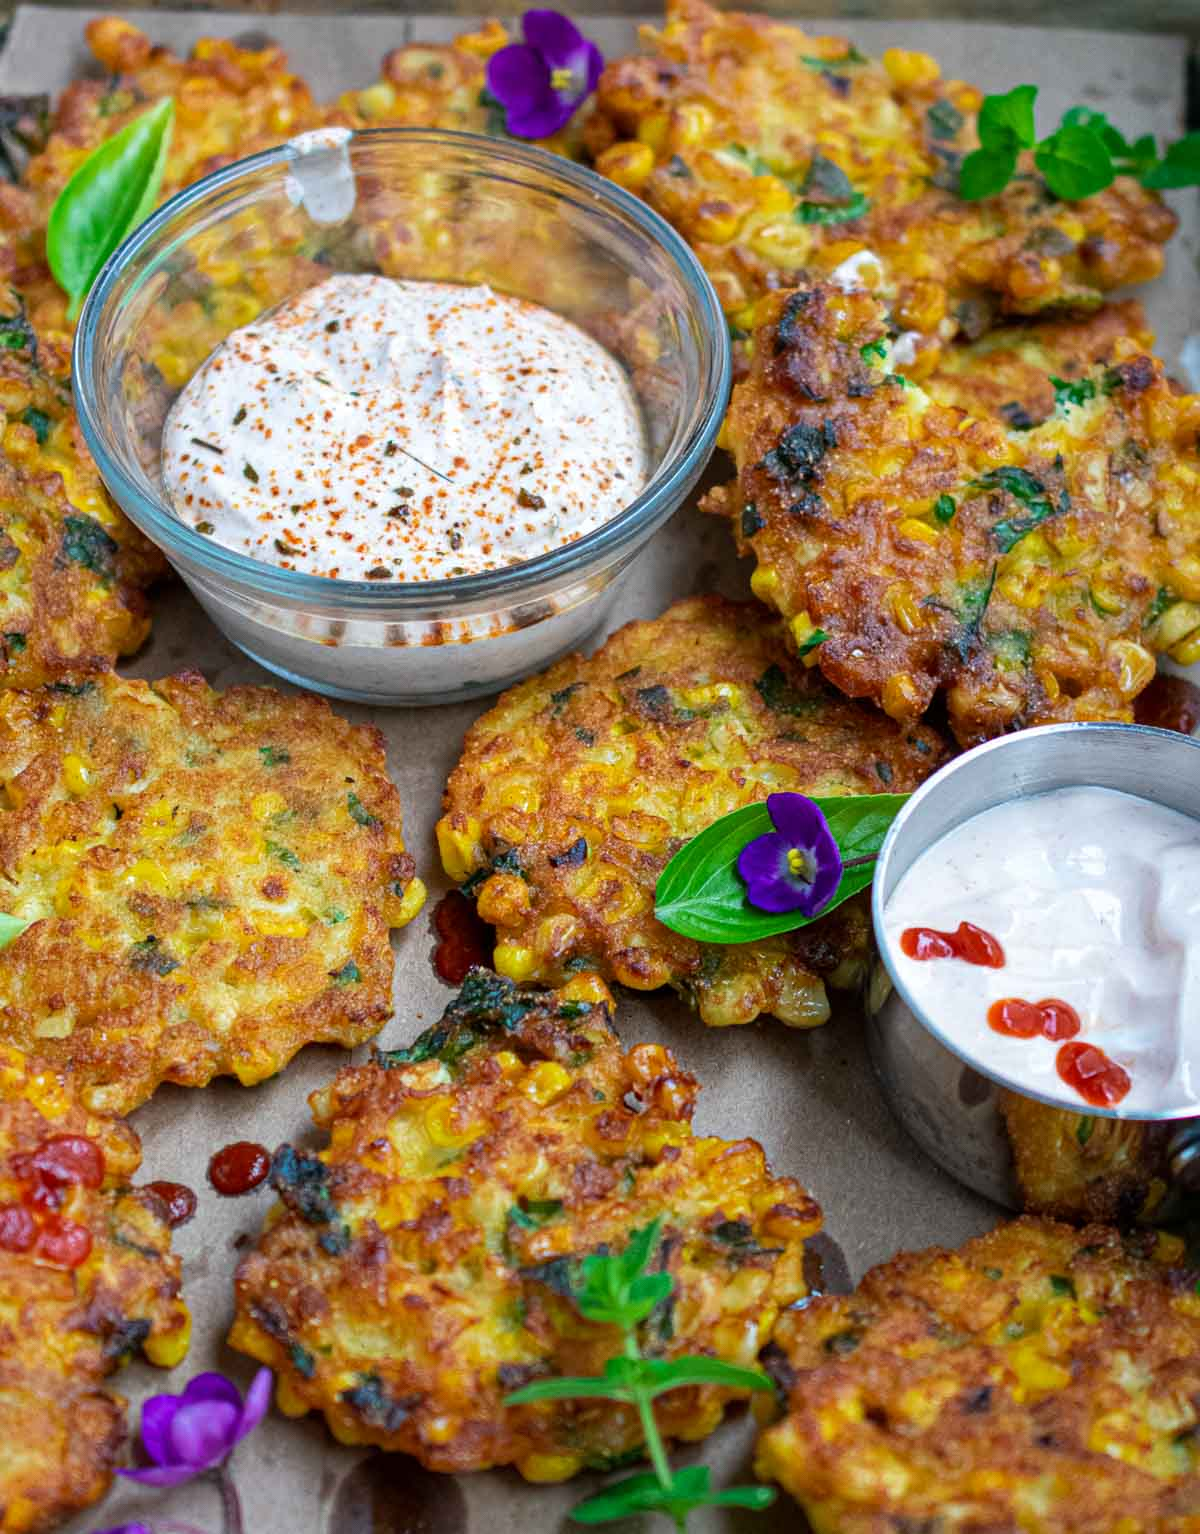 Fritters on a baking sheet.